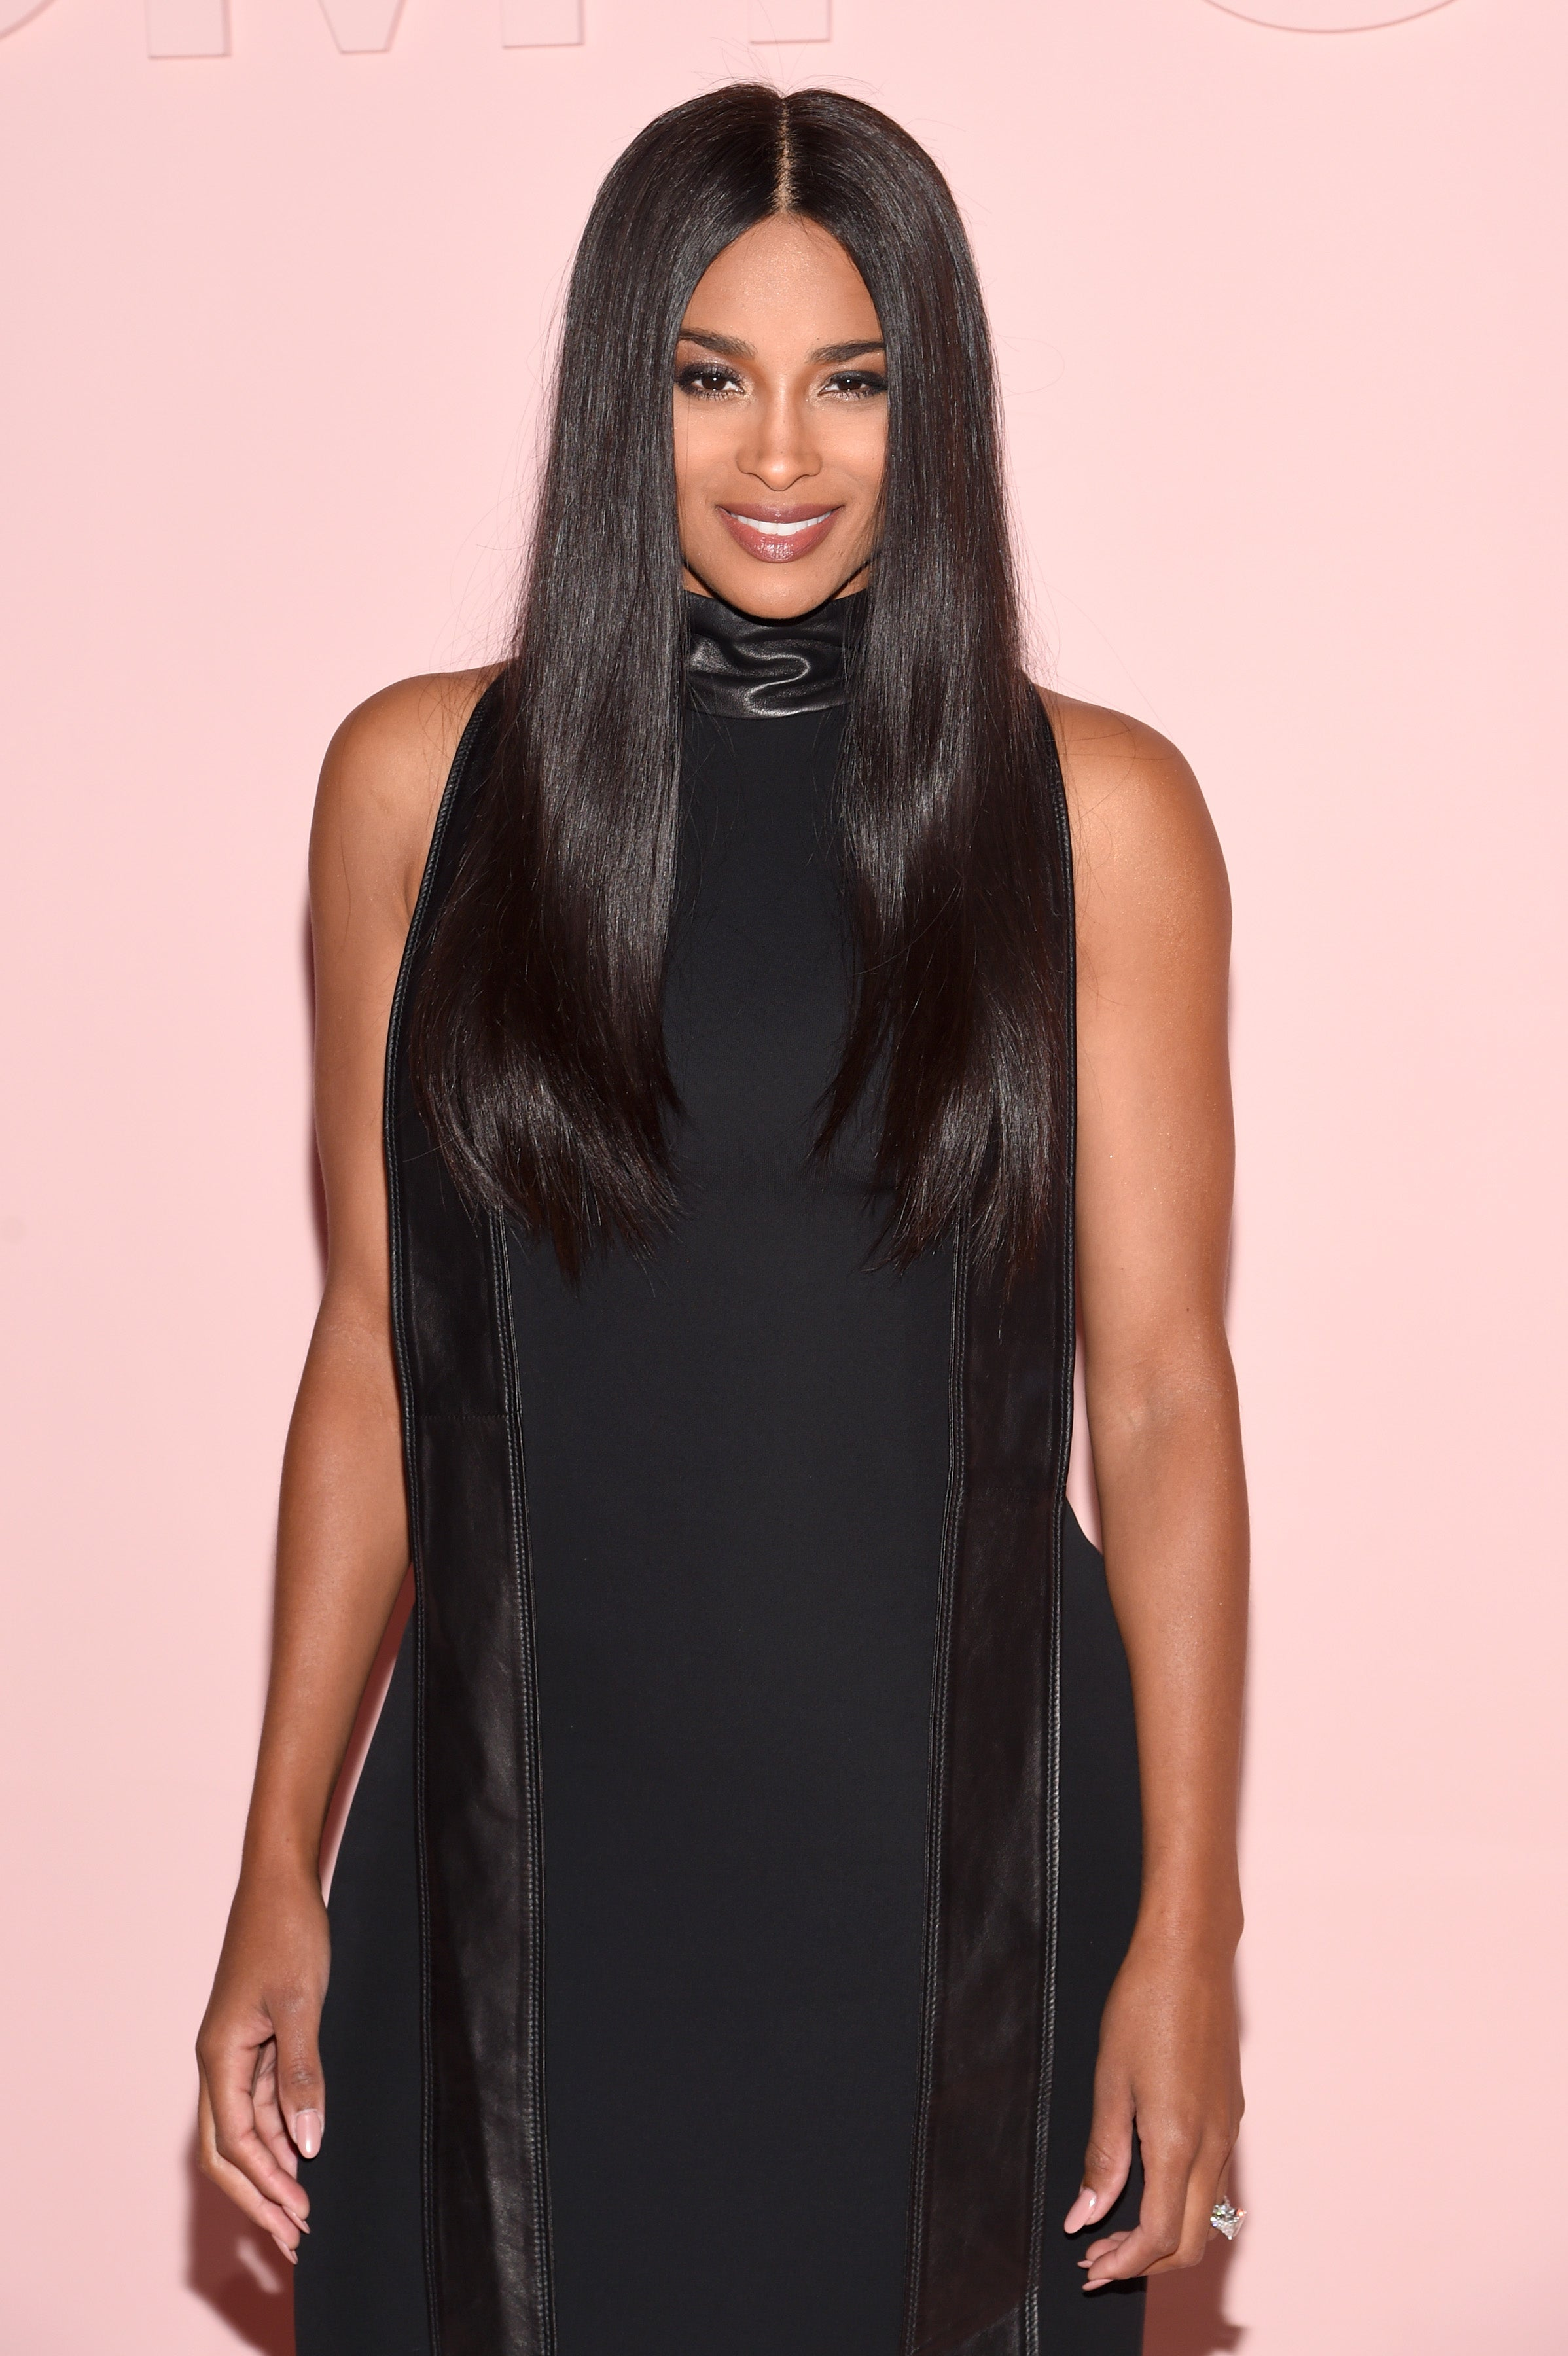 Women Are Not Happy With Ciara For Co Signing A Video Telling Them To Levelup To Wife Material